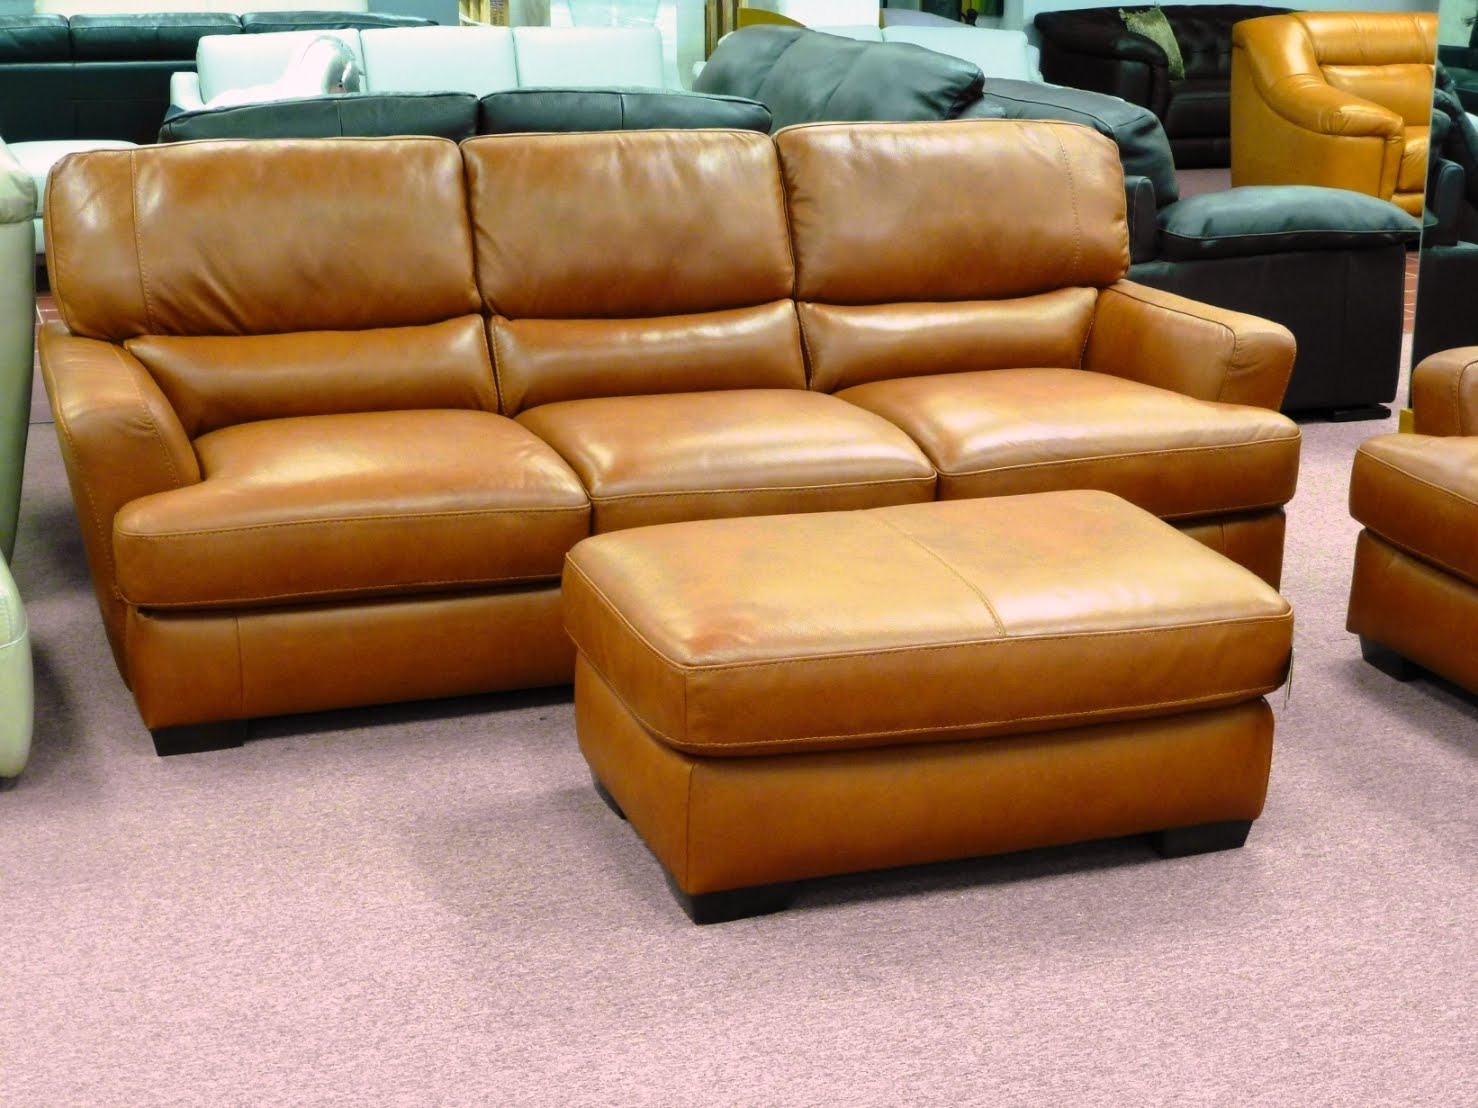 Orange Leather Chair Natuzzi Leather Sofas And Sectionals By Interior Concepts